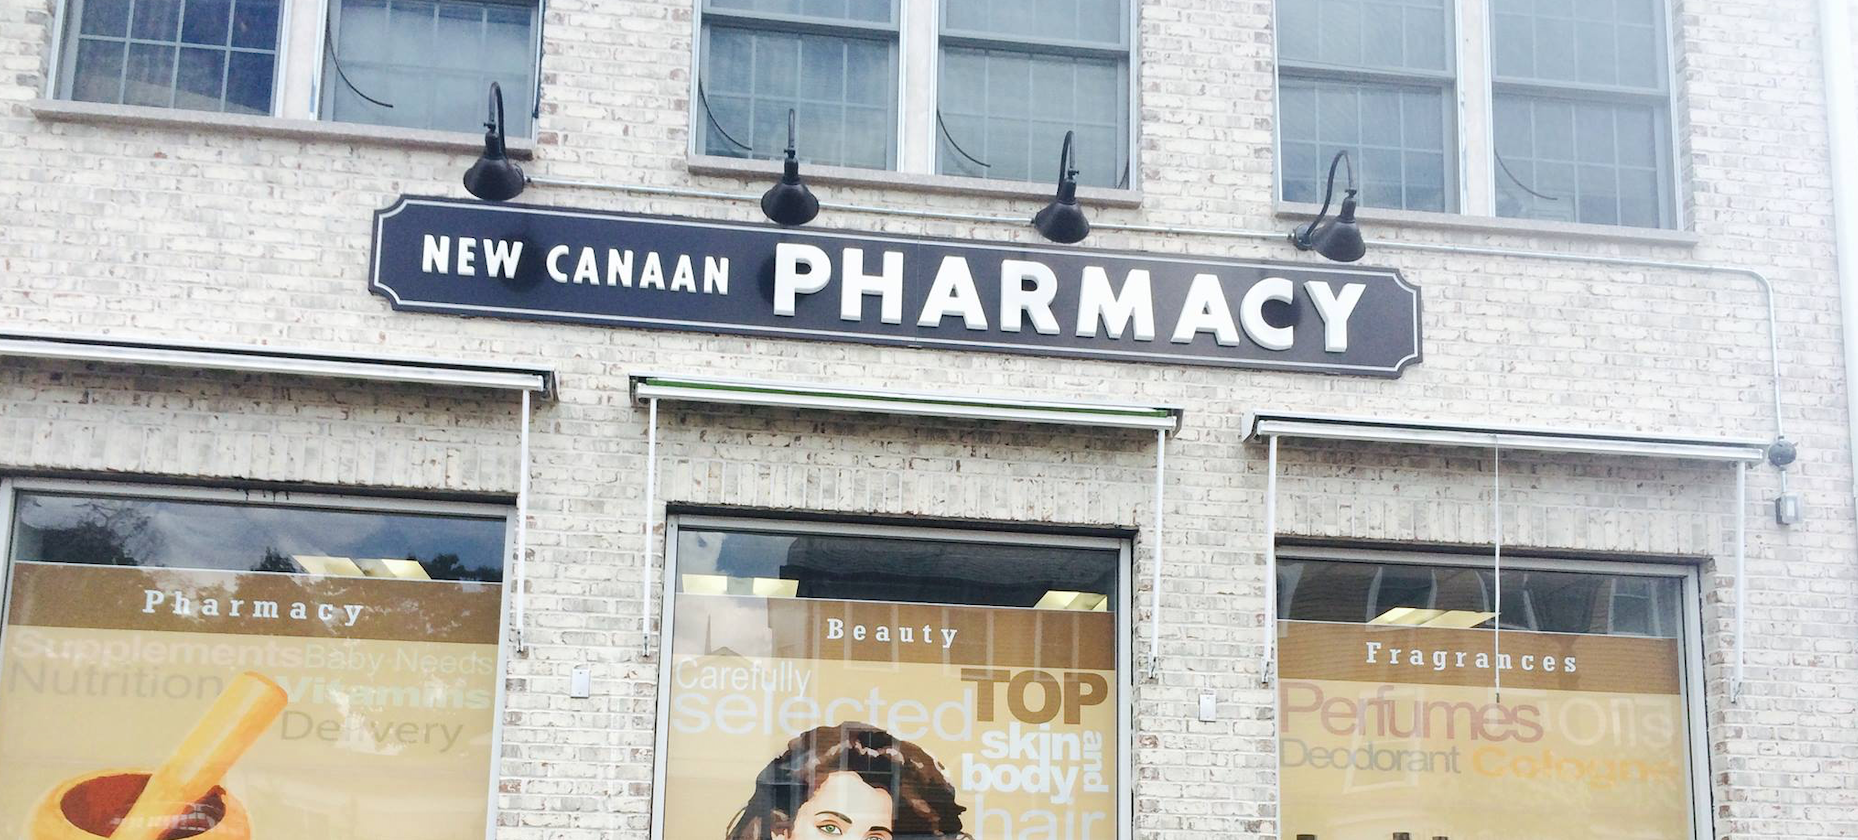 Welcome To New Canaan Pharmacy